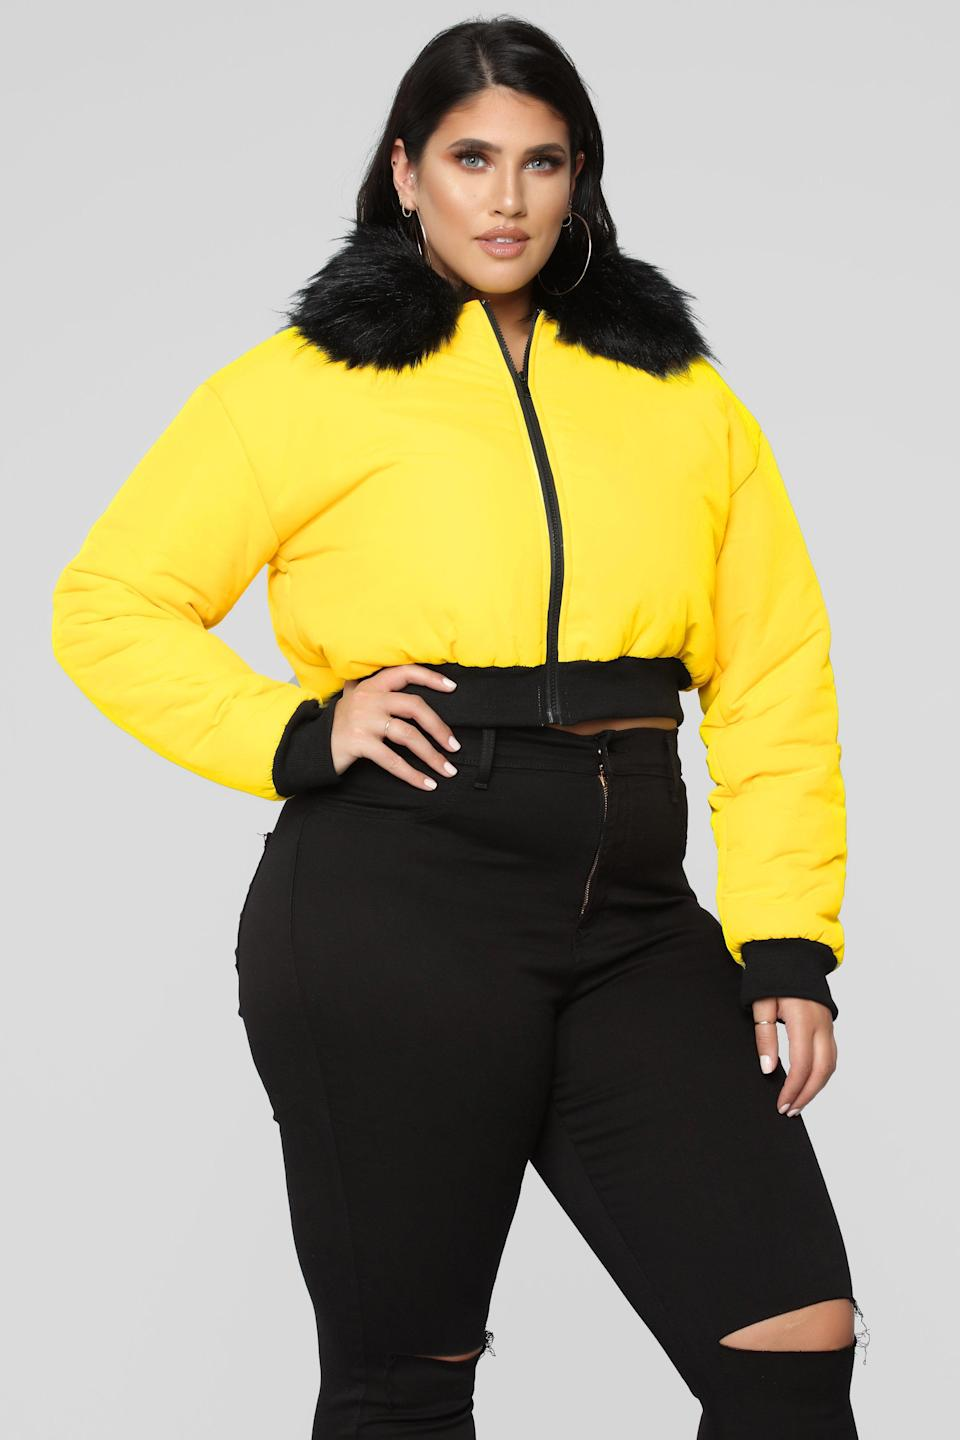 "<p>The past year has been all about cropped silhouettes and winter is no expection. Not only will this cropped jacket look fabulous with a pair of high waist leggings, its faux fur collar is perfect for winter.<br><a href=""https://go.skimresources.com?id=125078X1586062&xs=1&url=https%3A%2F%2Fwww.fashionnova.com%2Fcollections%2Fplus-jackets%2Fproducts%2Fcenter-attention-puffer-jacket-yellow"" rel=""nofollow noopener"" target=""_blank"" data-ylk=""slk:Shop it:"" class=""link rapid-noclick-resp""><strong>Shop it:</strong> </a>Center Of Attention Puffer Jacket, $50, <a href=""https://go.skimresources.com?id=125078X1586062&xs=1&url=https%3A%2F%2Fwww.fashionnova.com%2Fcollections%2Fplus-jackets%2Fproducts%2Fcenter-attention-puffer-jacket-yellow"" rel=""nofollow noopener"" target=""_blank"" data-ylk=""slk:fashionnova.com"" class=""link rapid-noclick-resp"">fashionnova.com</a> </p>"